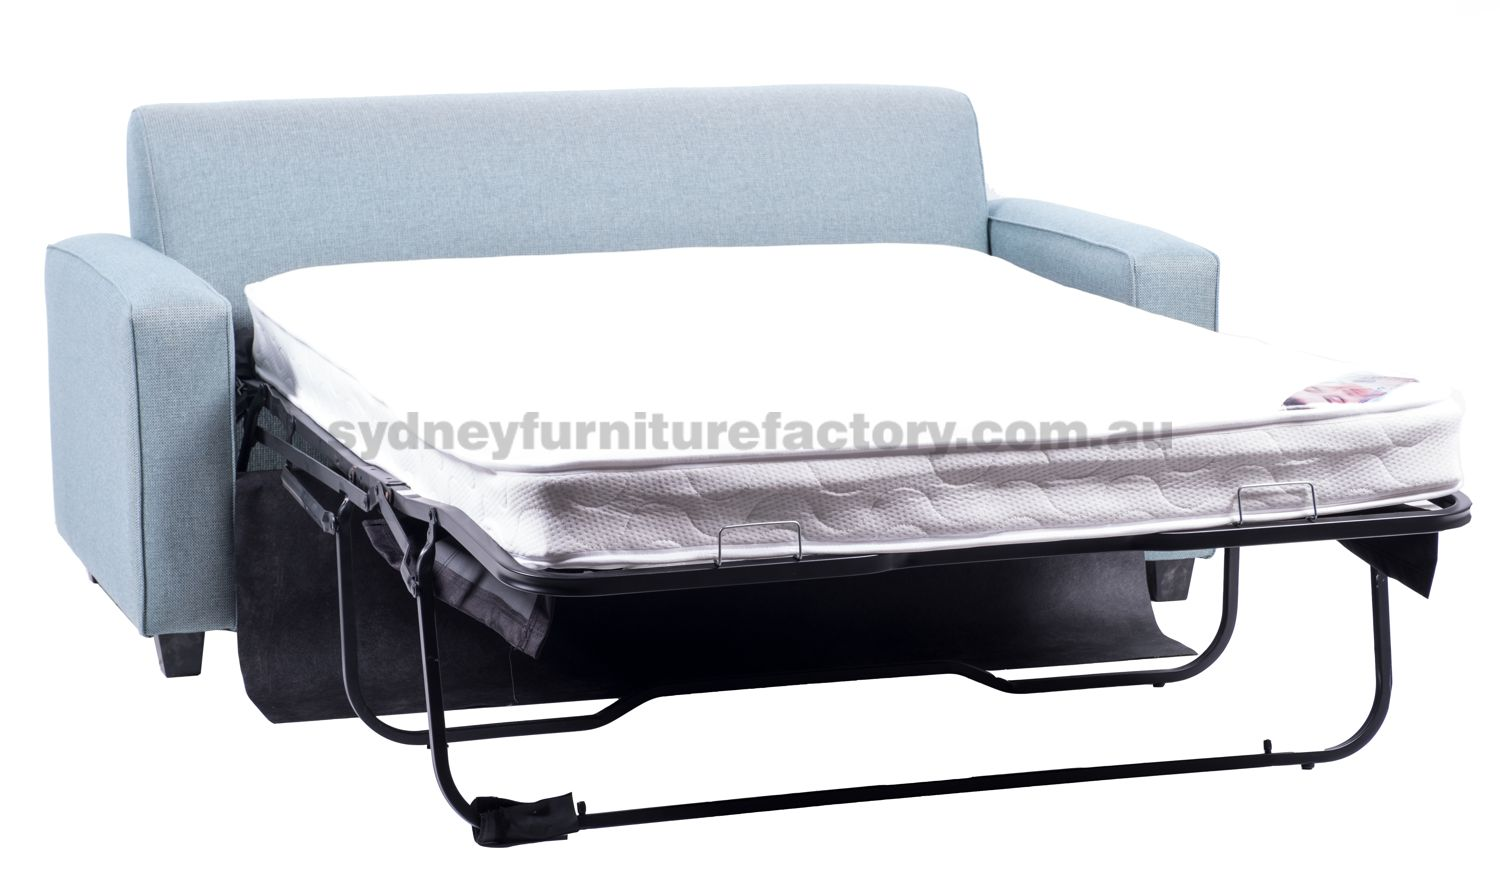 Bed Mattress Sydney Oatley Sofa Bed With Latex Inner Spring Mattress Sydney